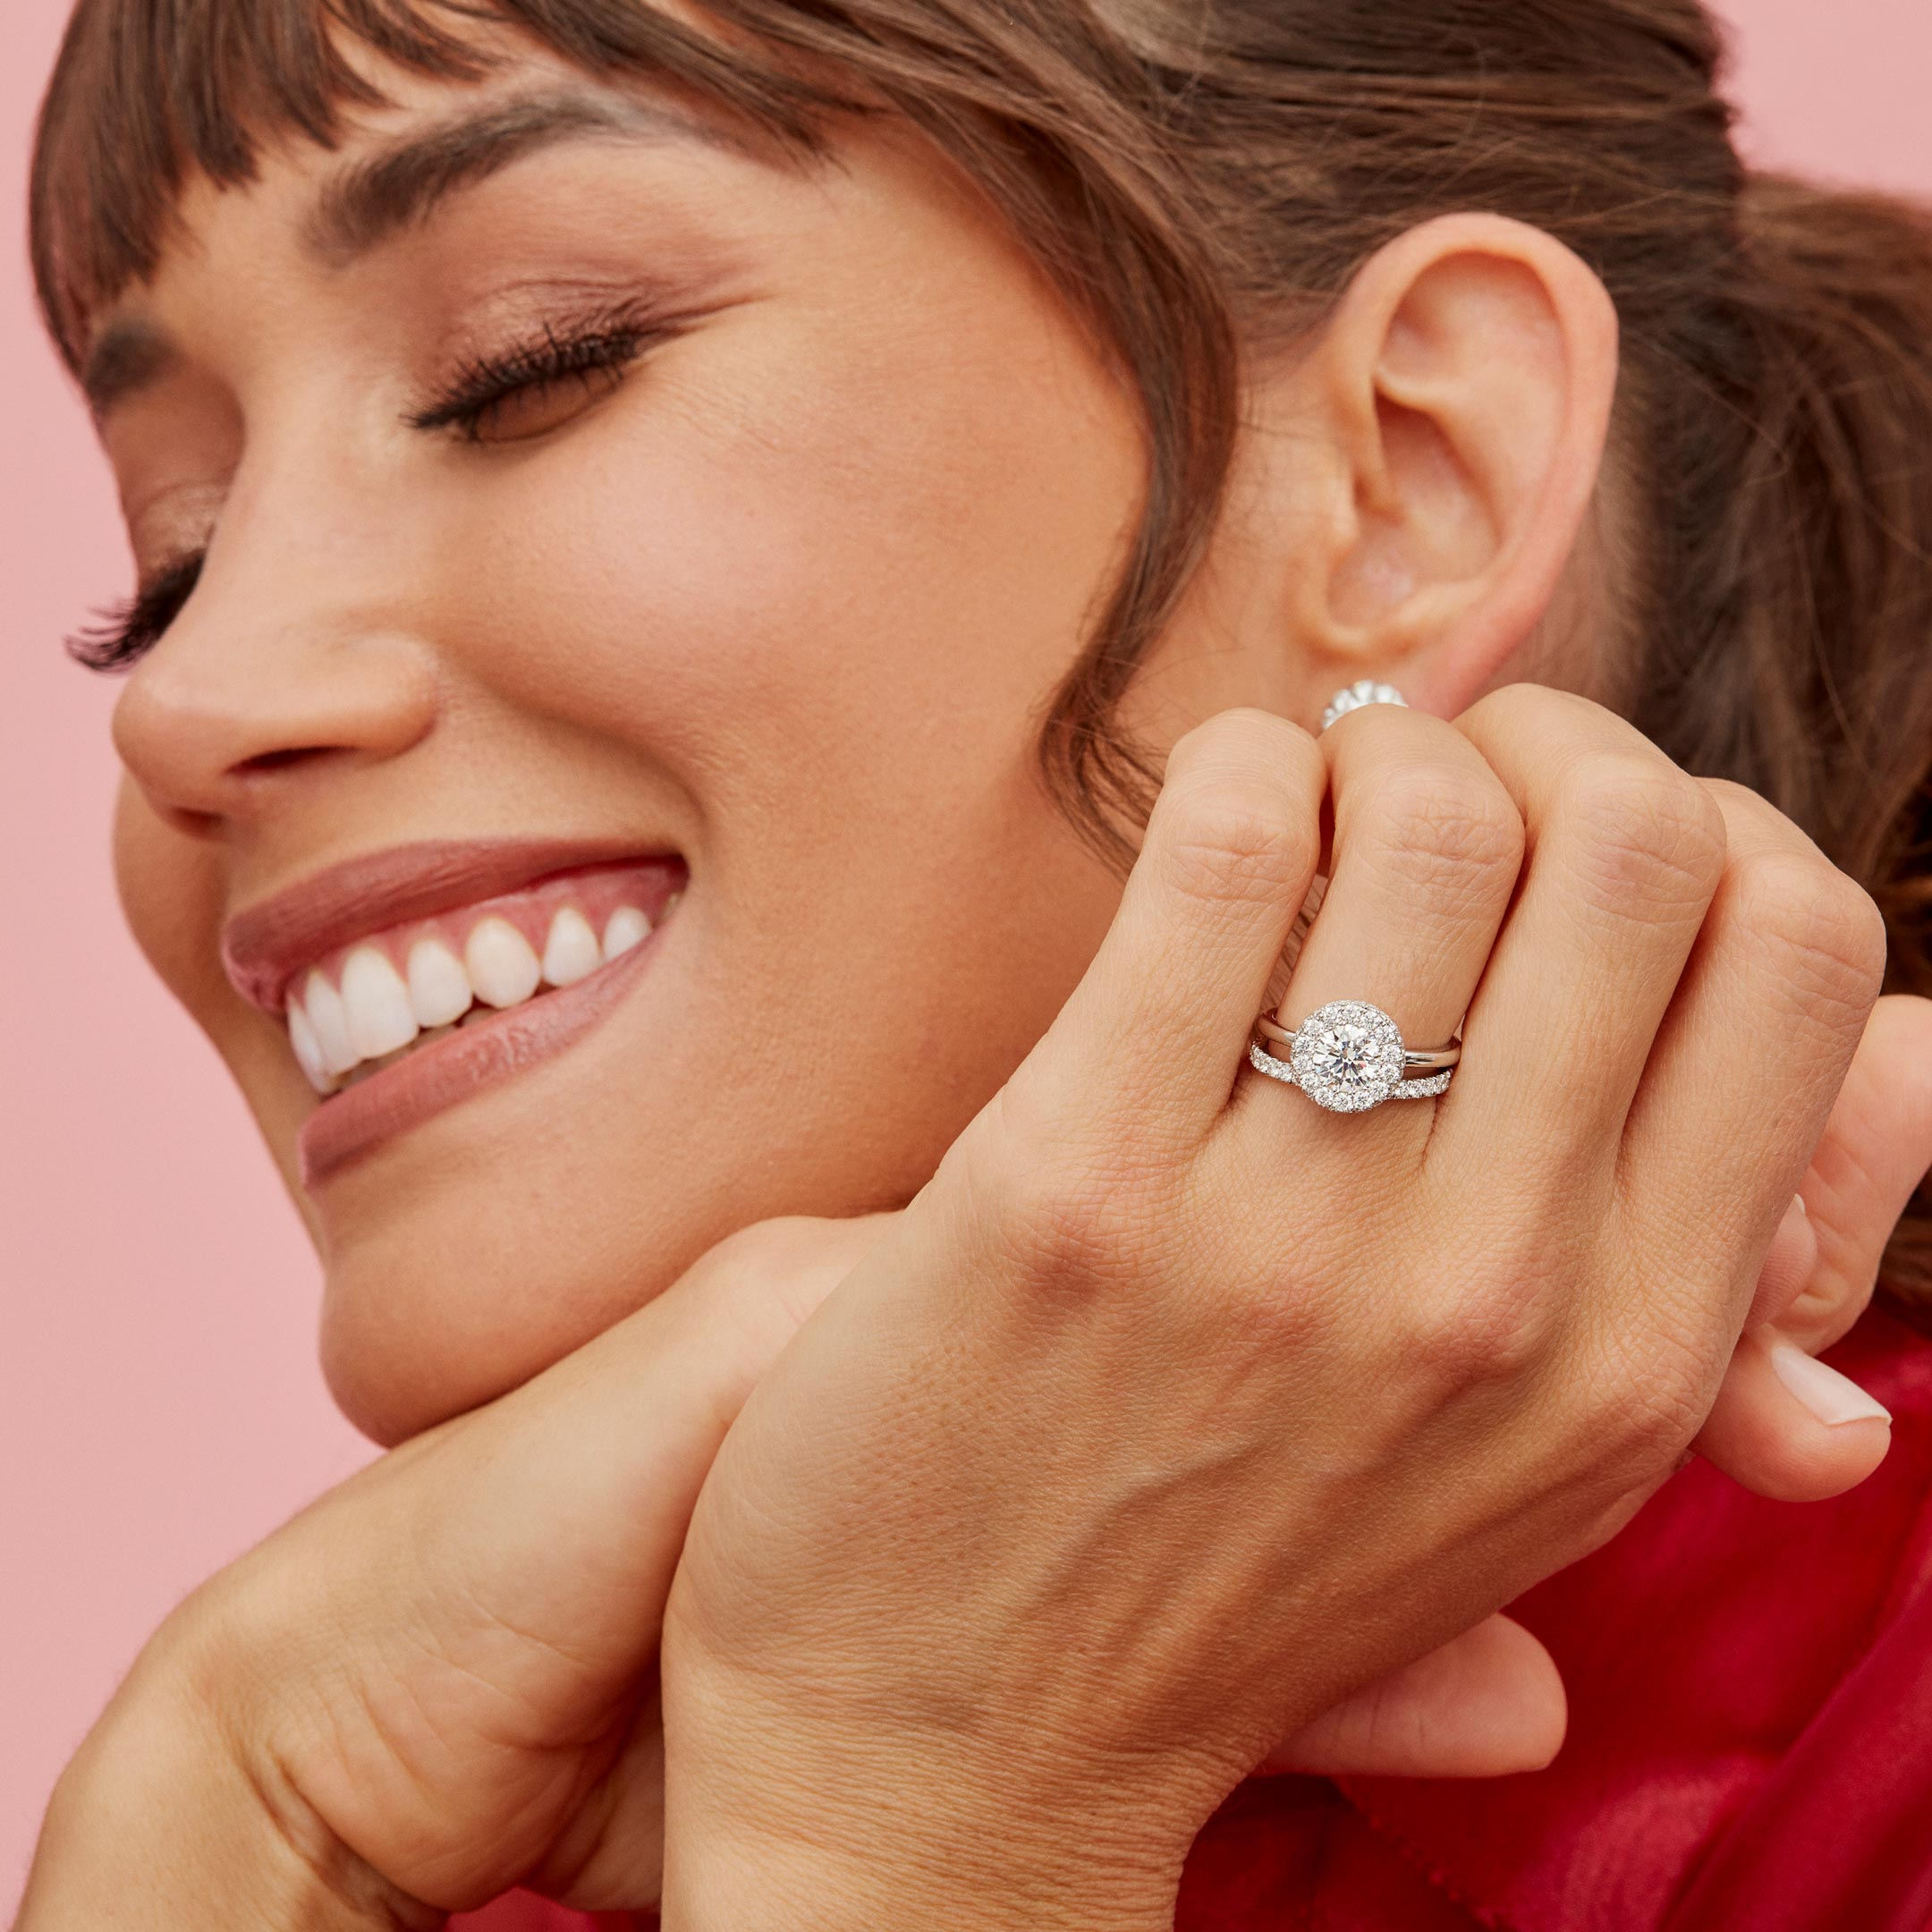 Colette Round Brilliant Seamless Halo® Engagement Ring with a solid band in Platinum Model Lifestyle by Oui by Jean DoussetColette Round Brilliant Seamless Halo® Engagement Ring with a solid band in Platinum by Oui by Jean Dousset